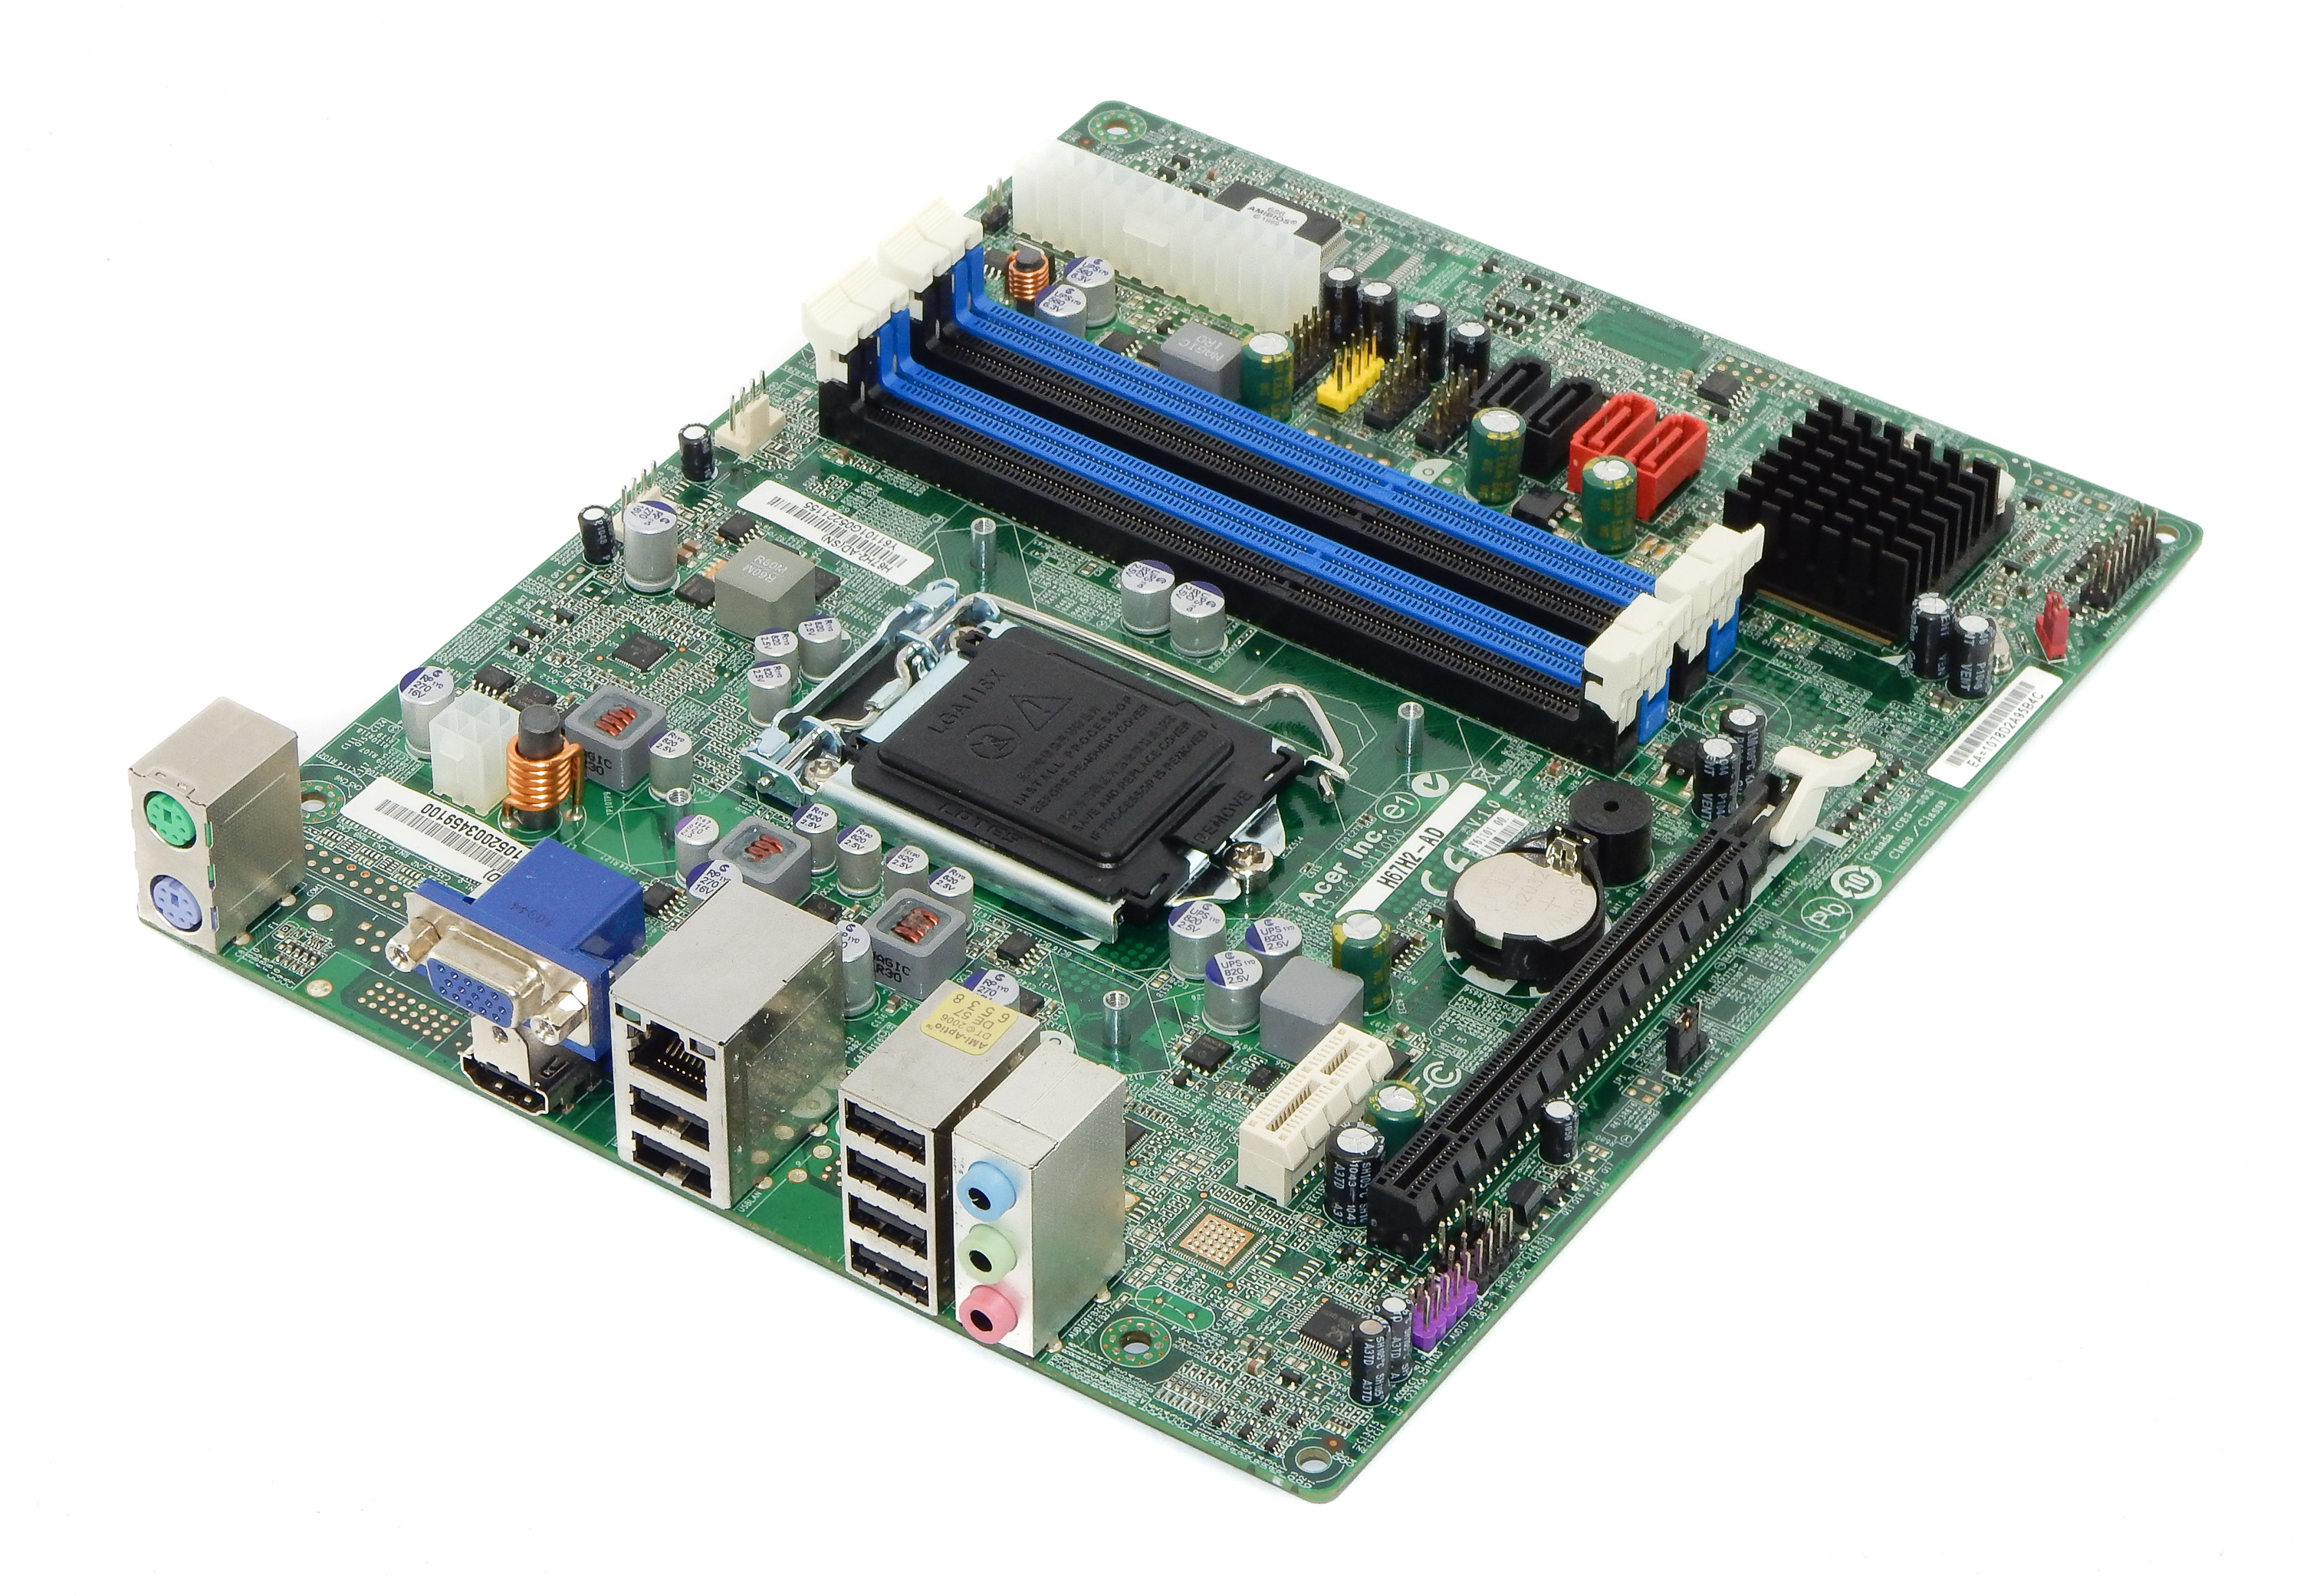 H67H2-AD Packard Bell oneTwo Motherboard L5861 L17526uk Z5761 1155 MB.U6B07.001